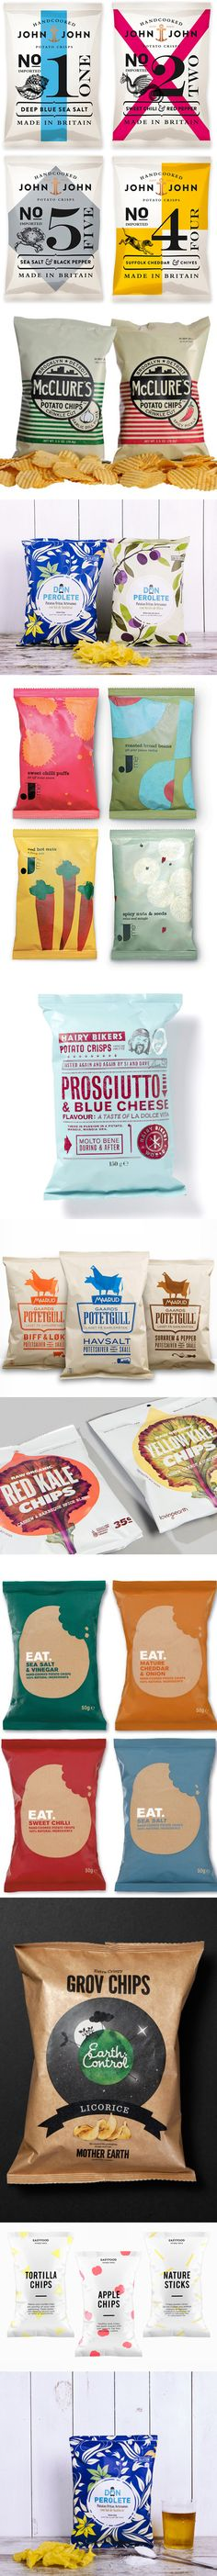 All about chips #packaging collection PD